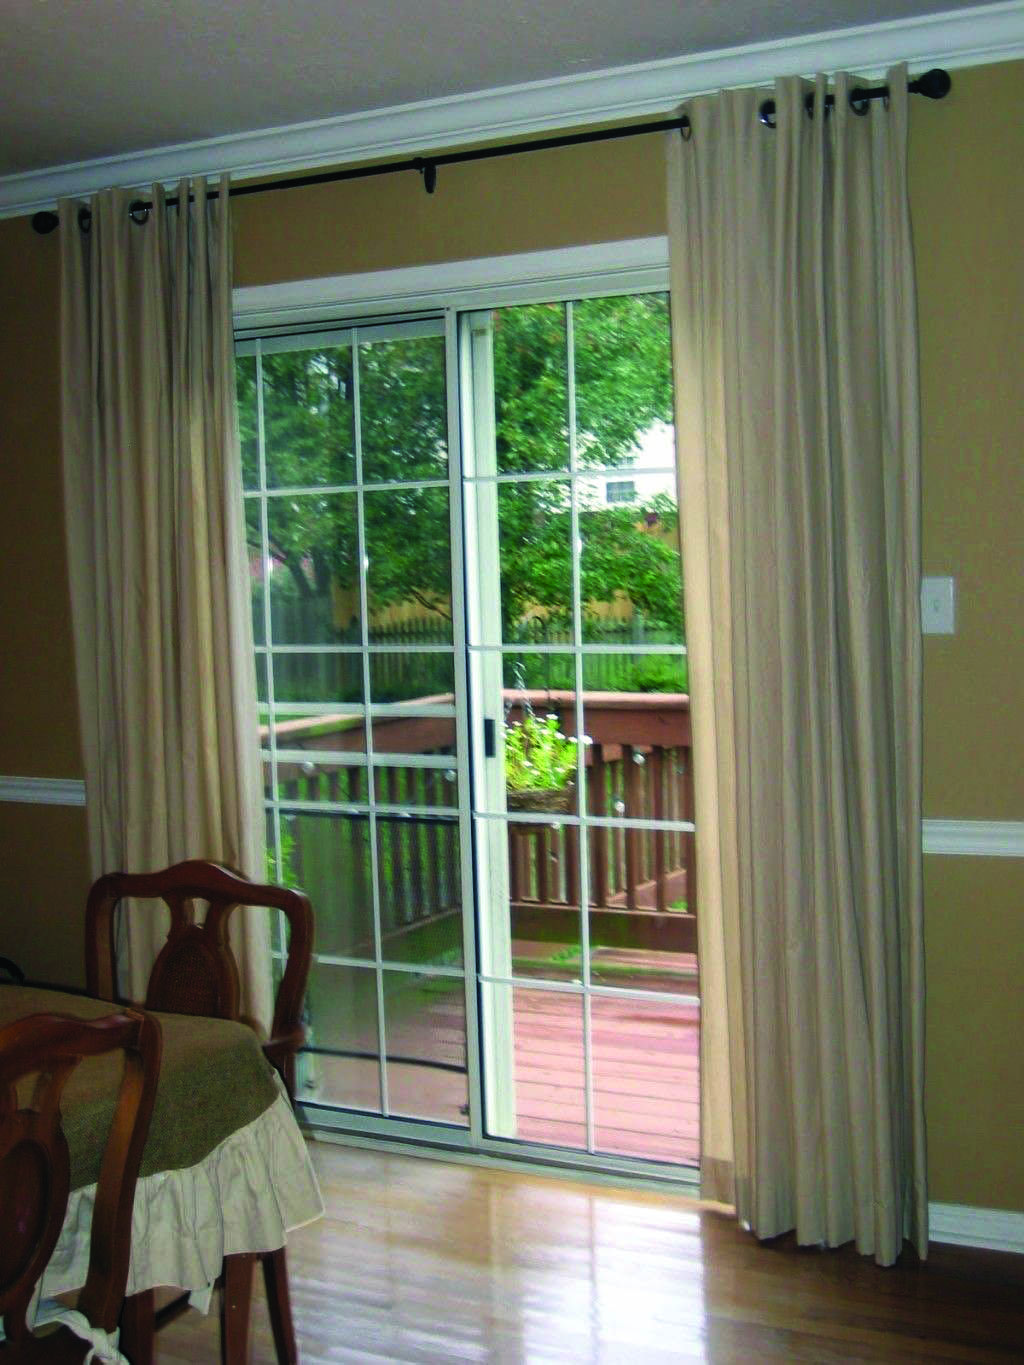 Moving Door Styles For Bedroom Sliding Glass Door Window